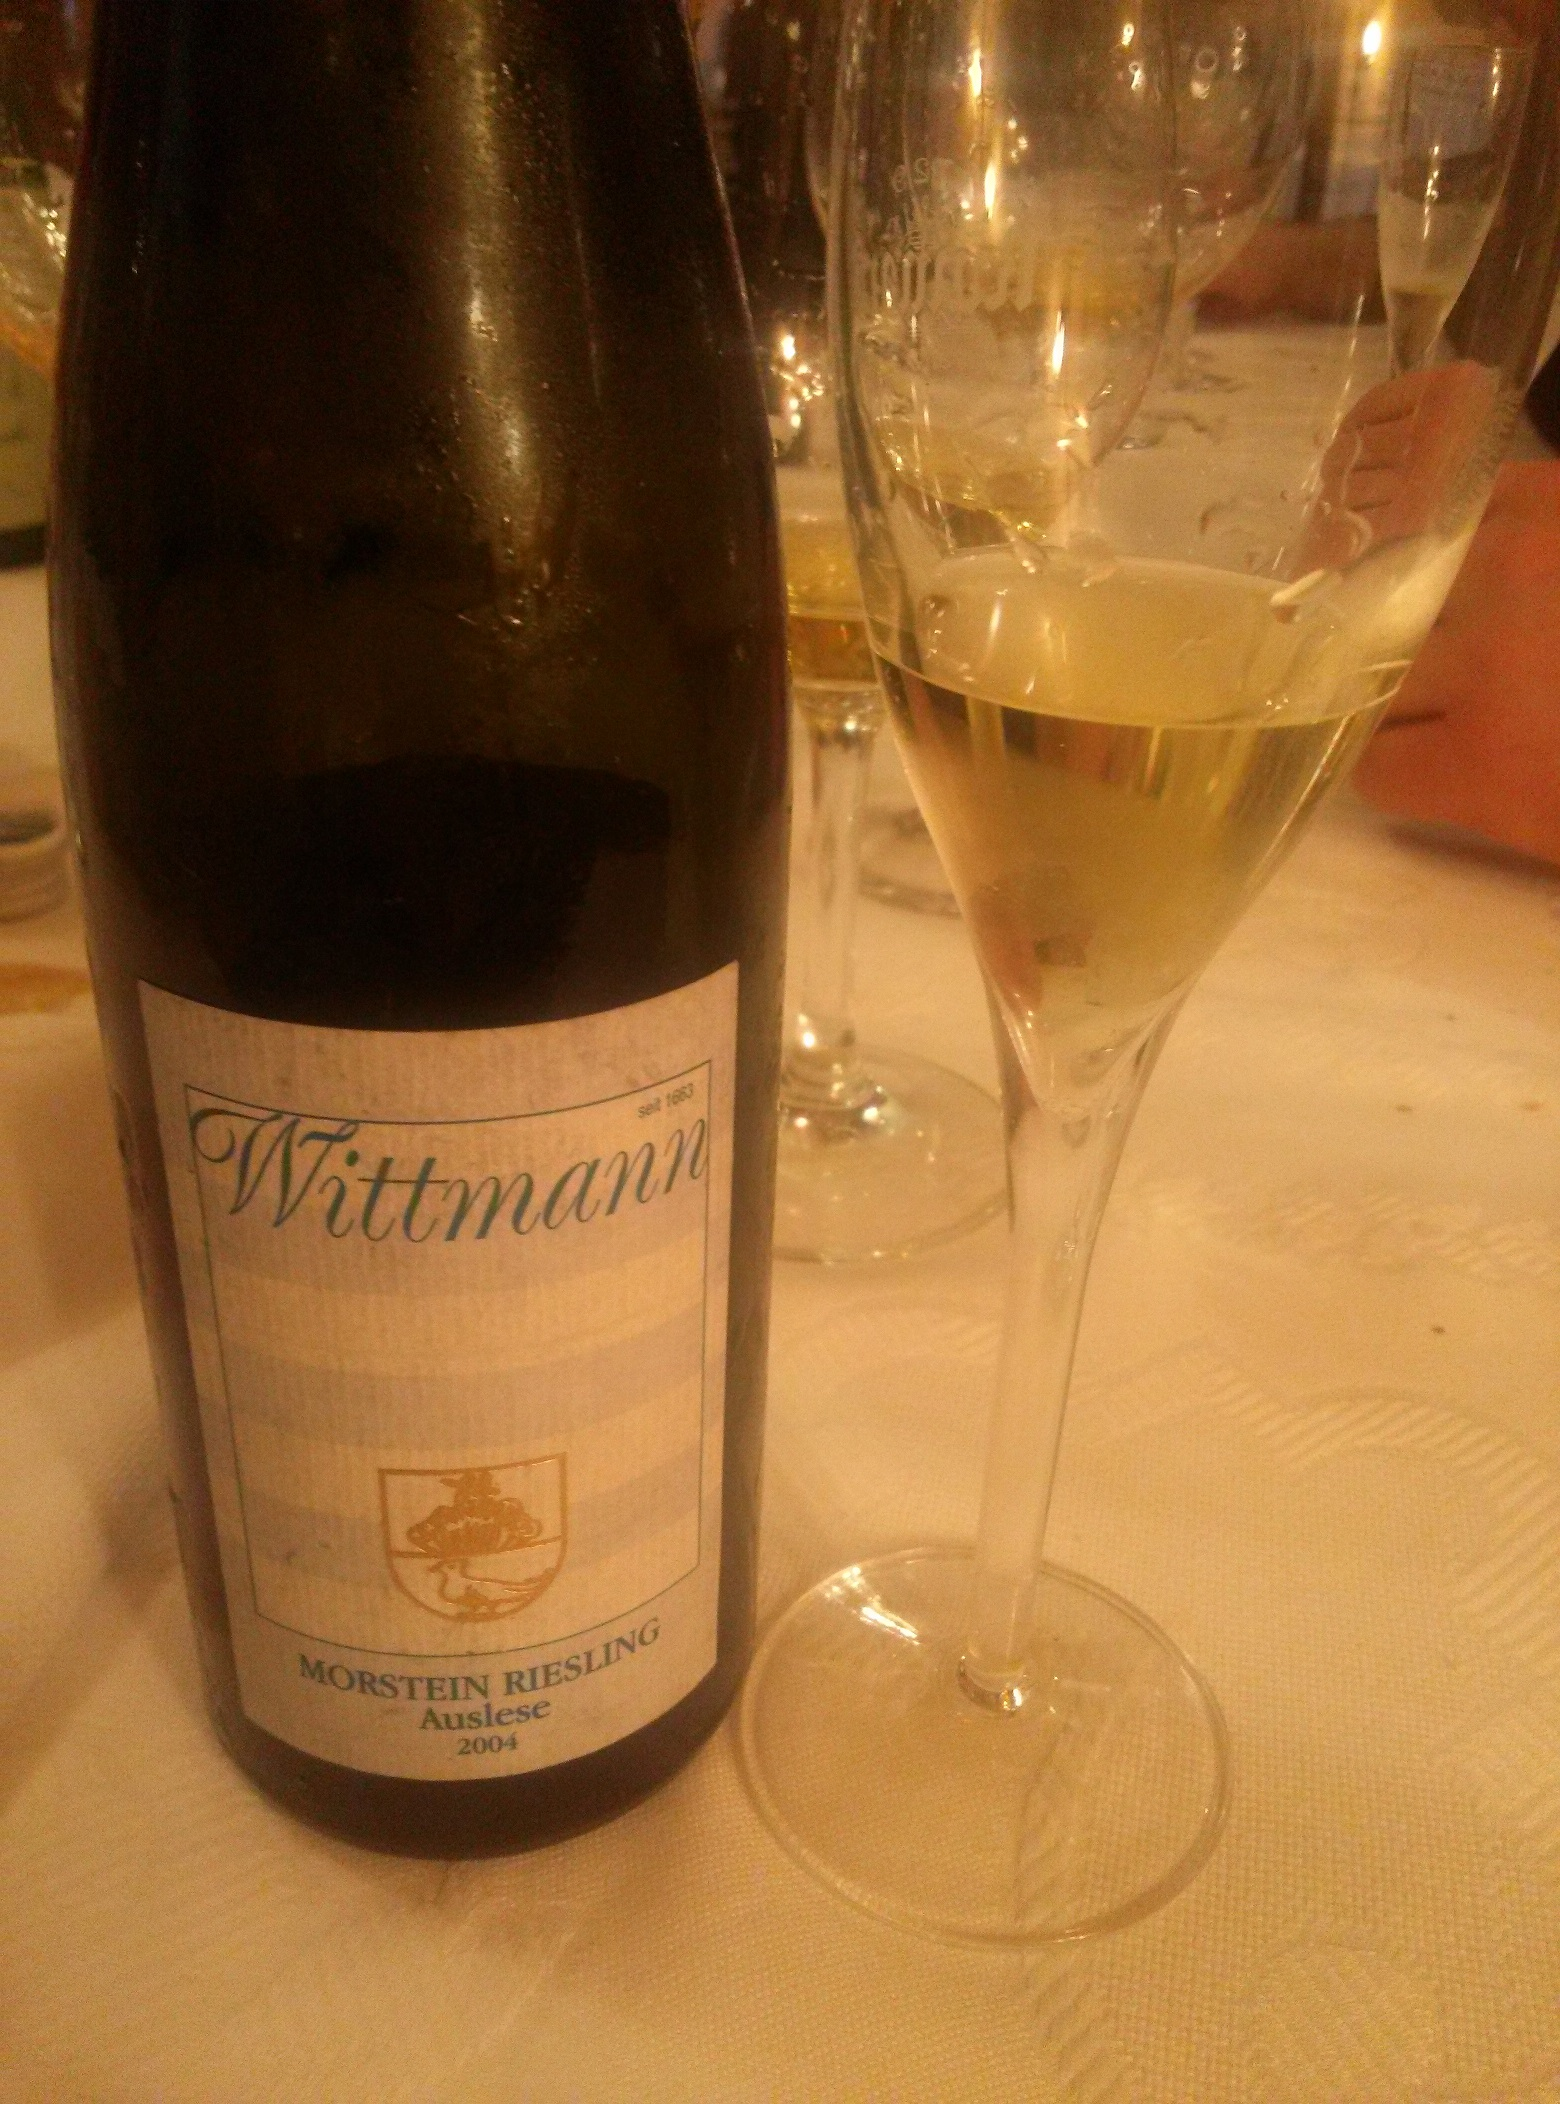 Excelente riesling auslese